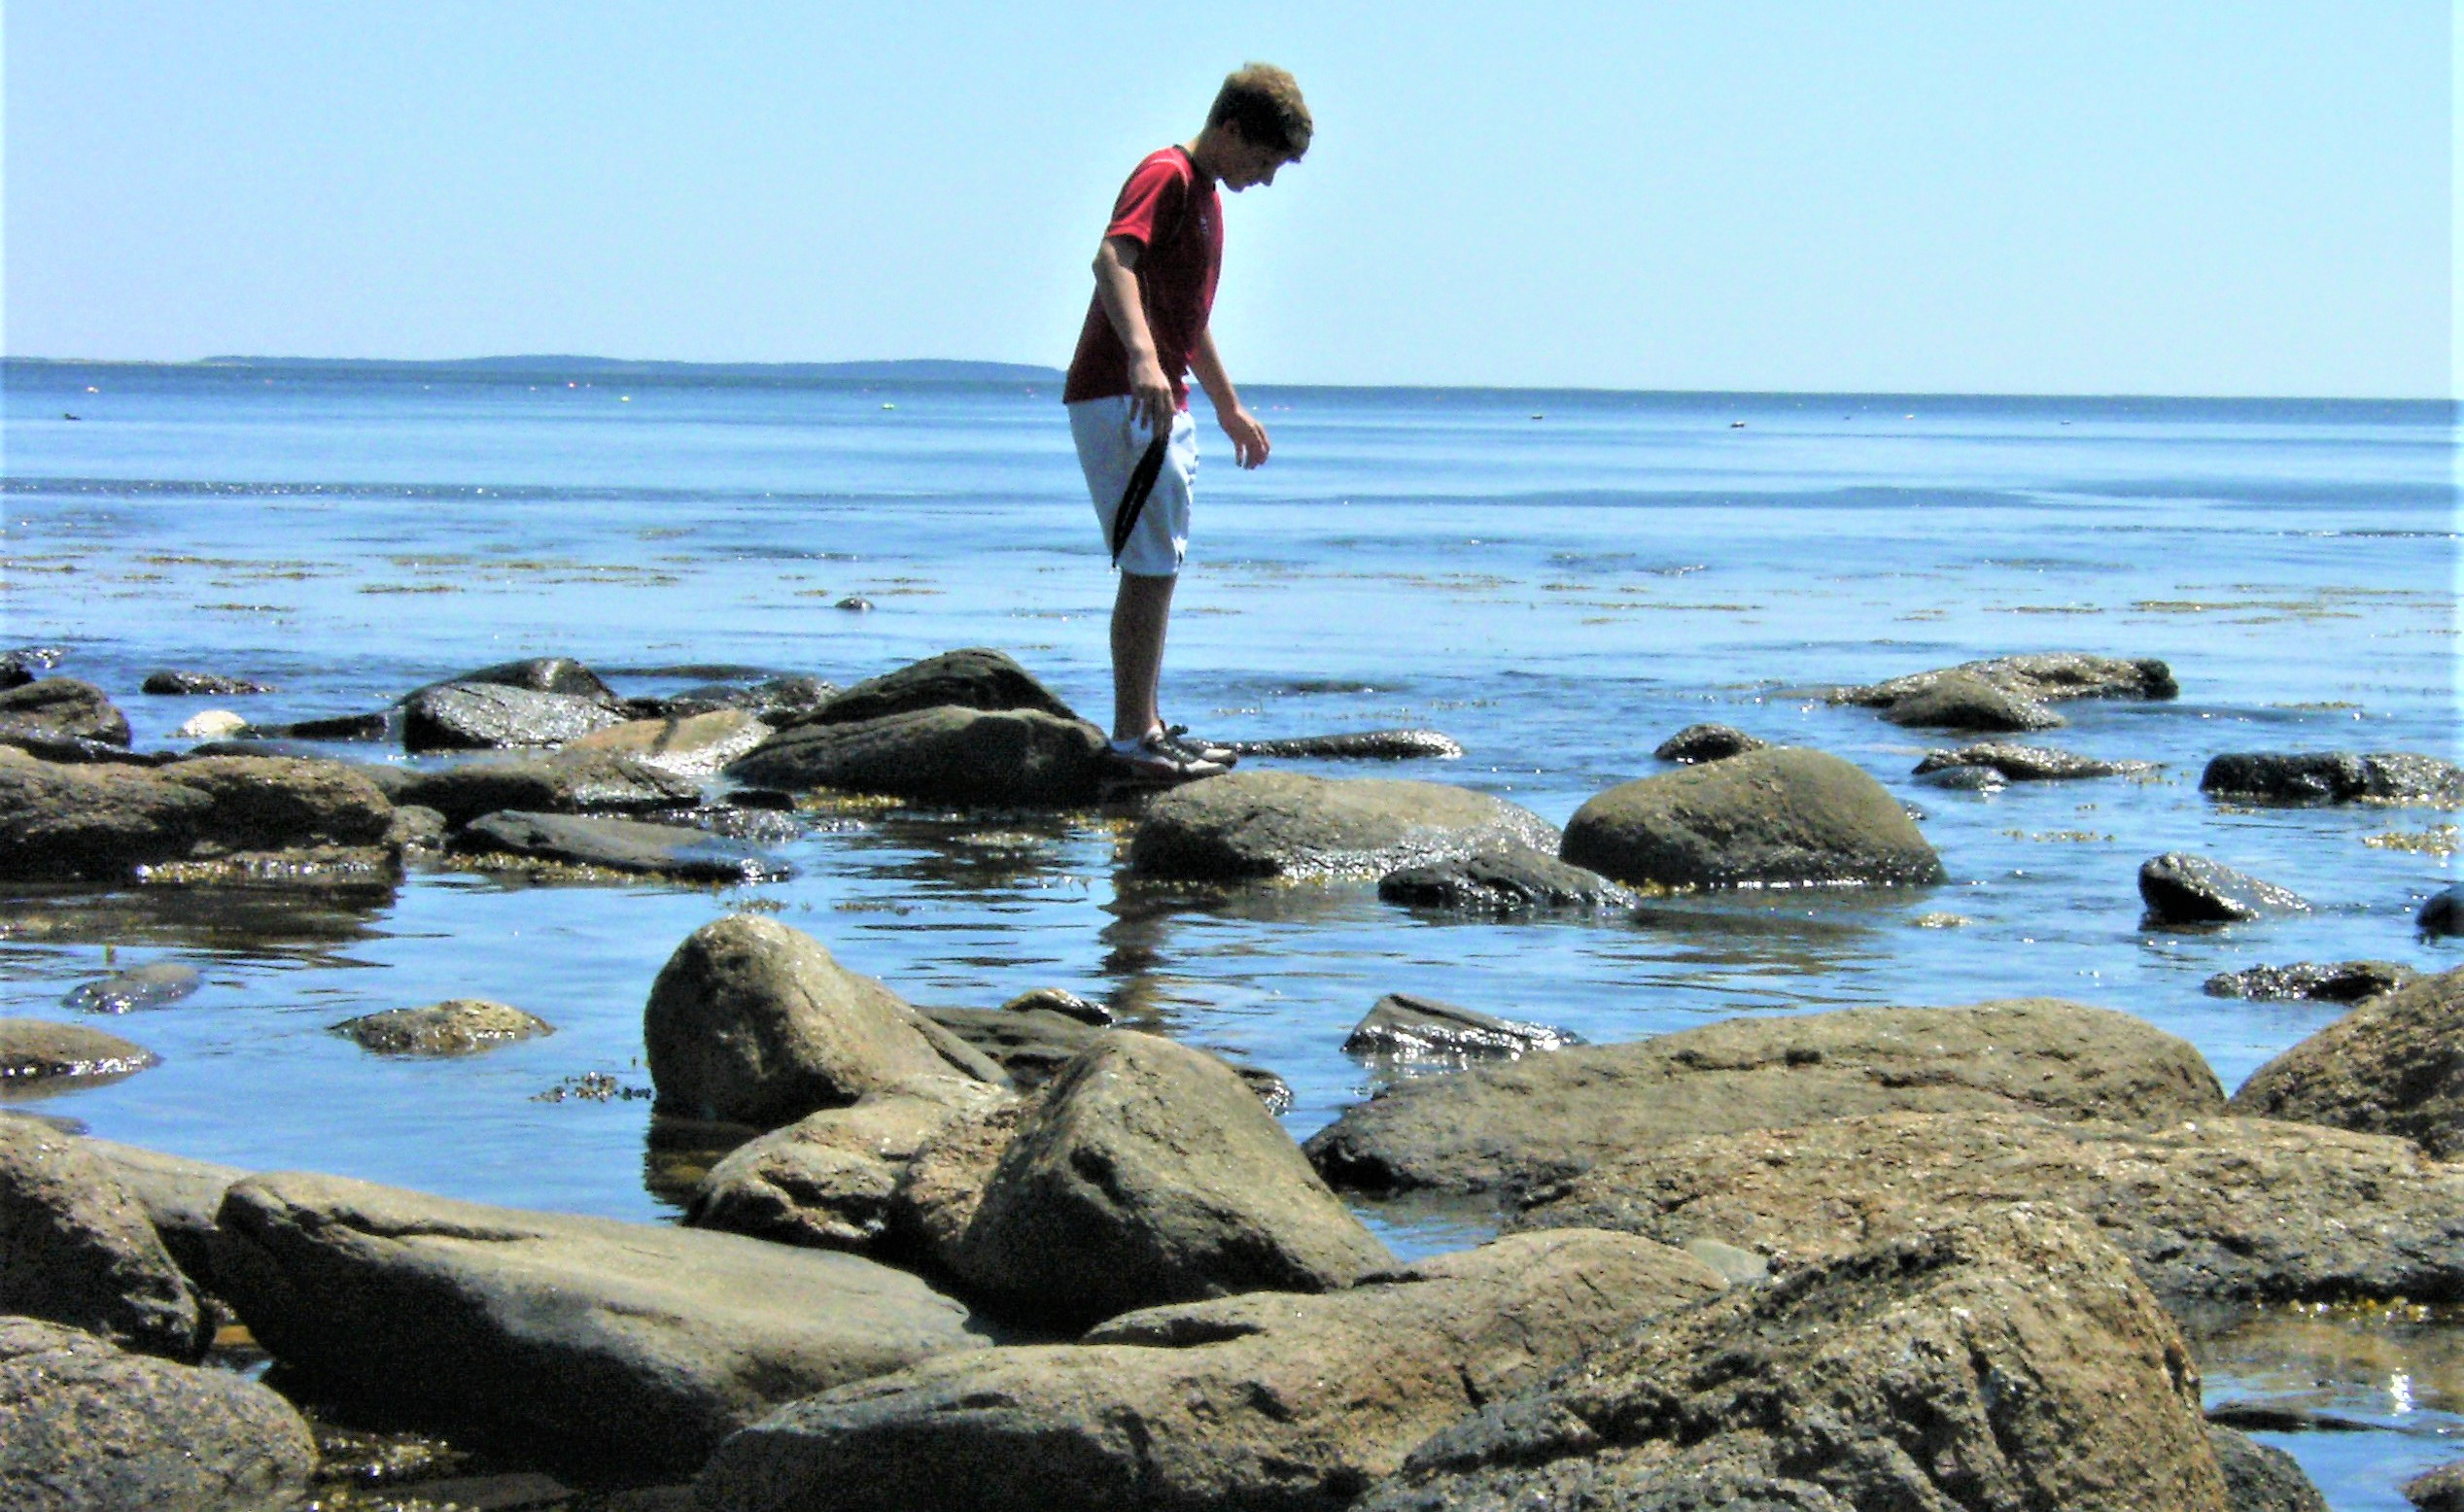 A young man carefully climbs rocks around tidepools.